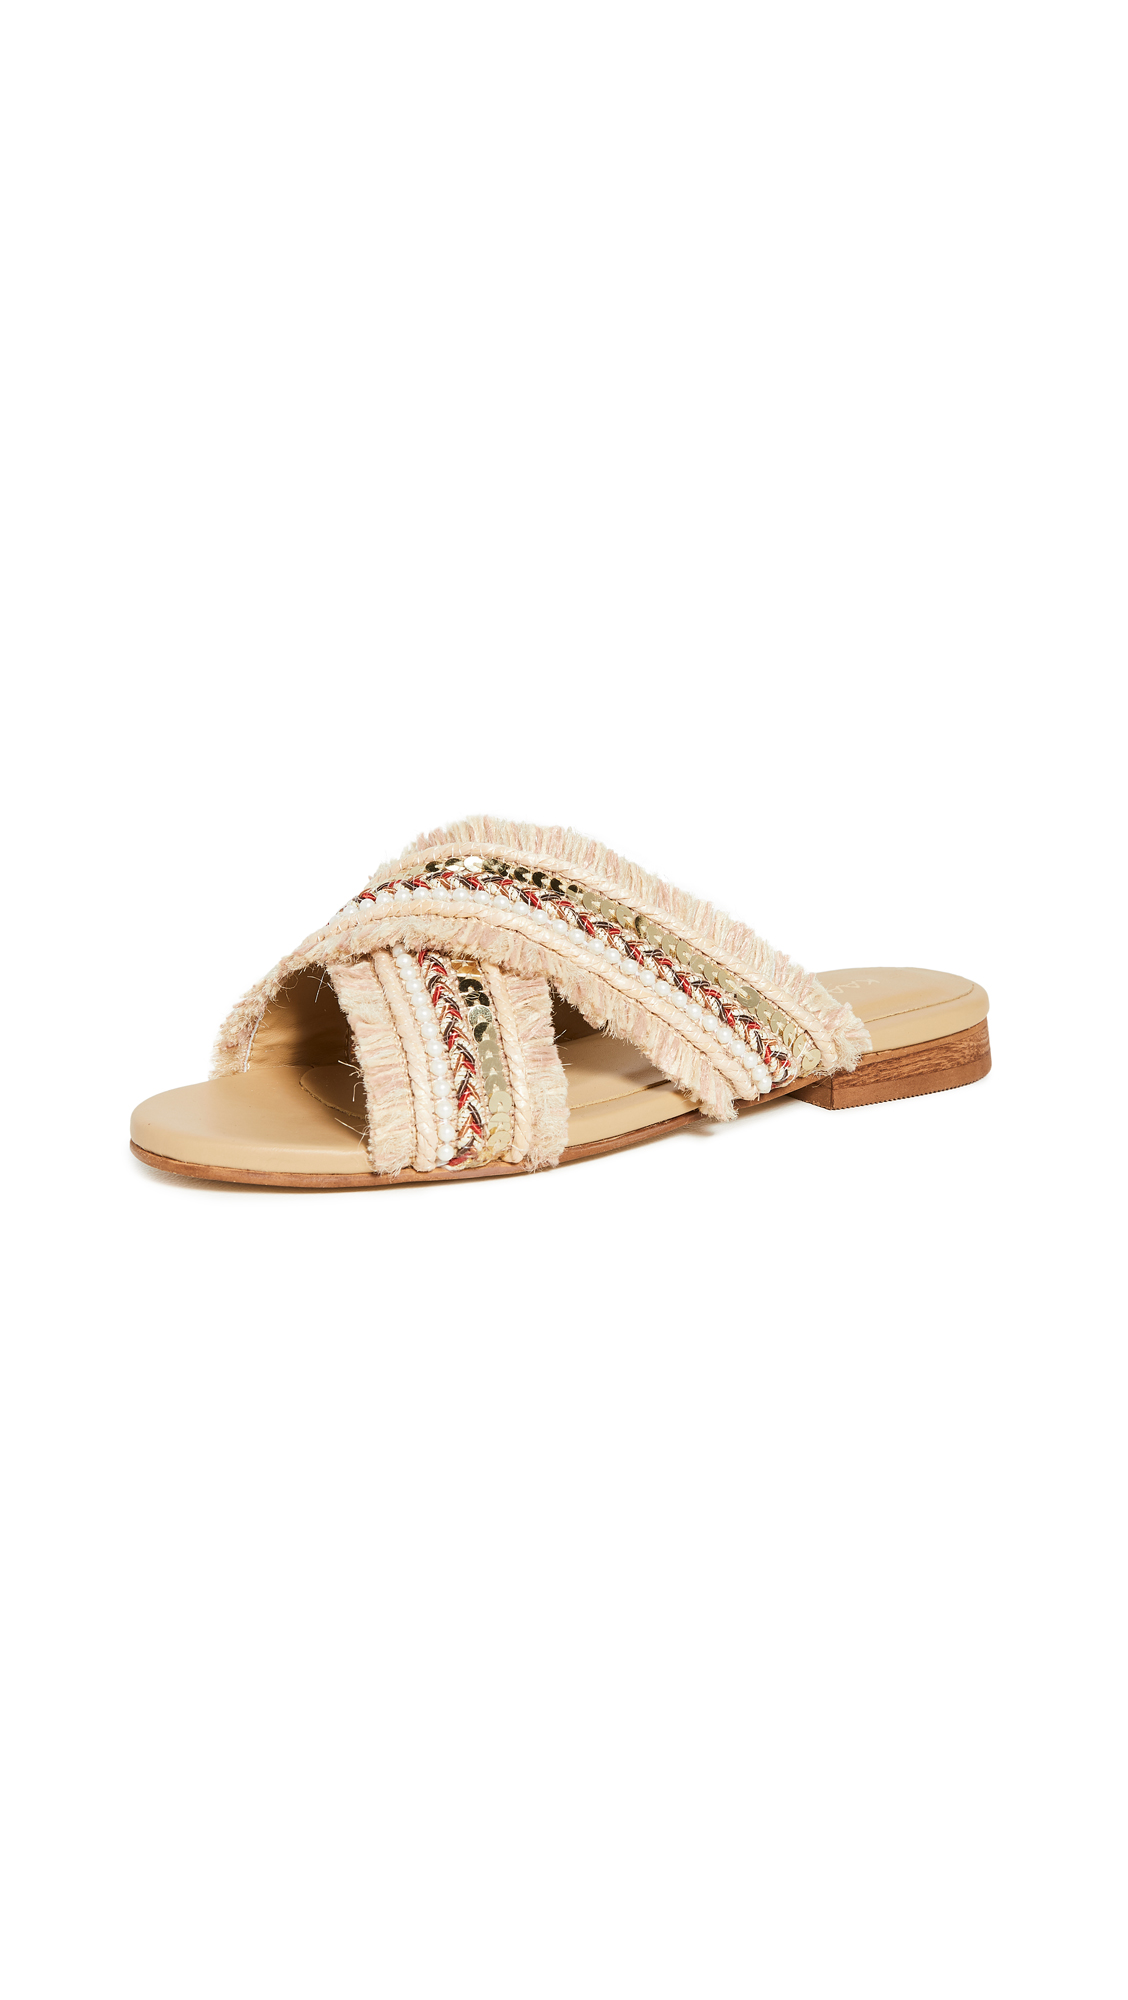 Buy KAANAS Ibiza Crossover Sandals online, shop KAANAS